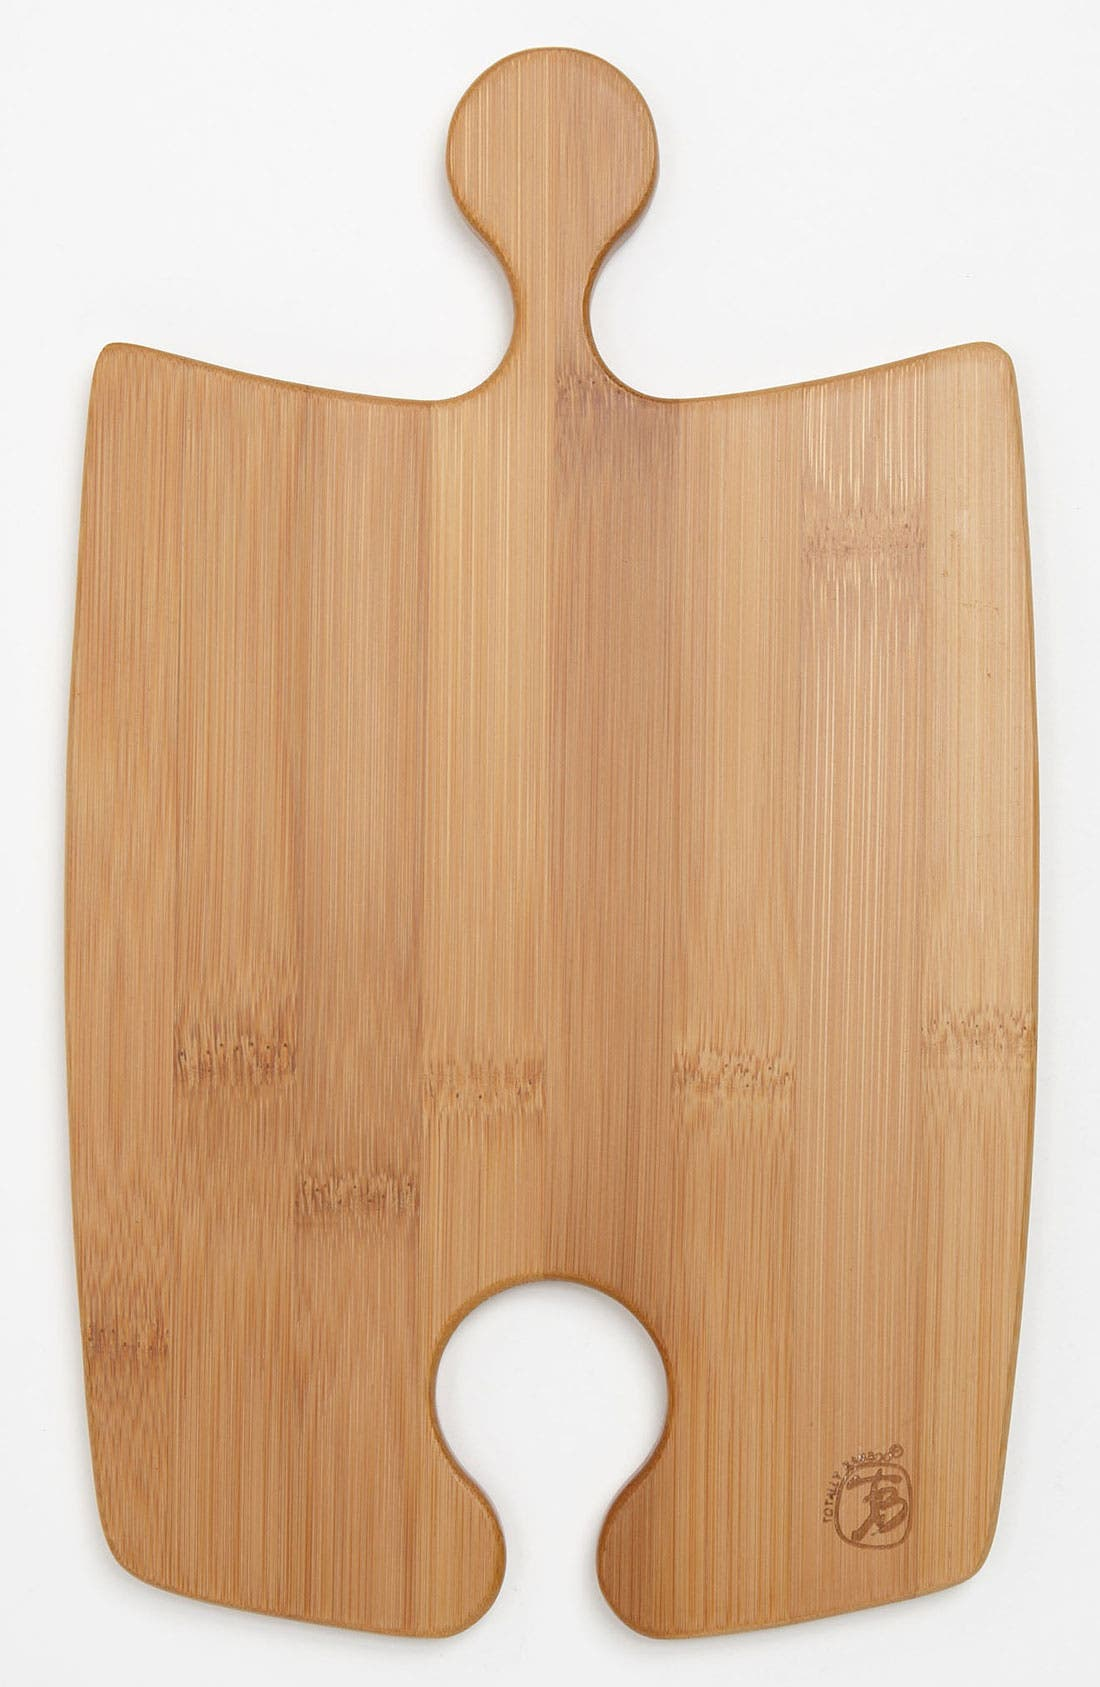 Main Image - Totally Bamboo 'Puzzle' Cheeseboard